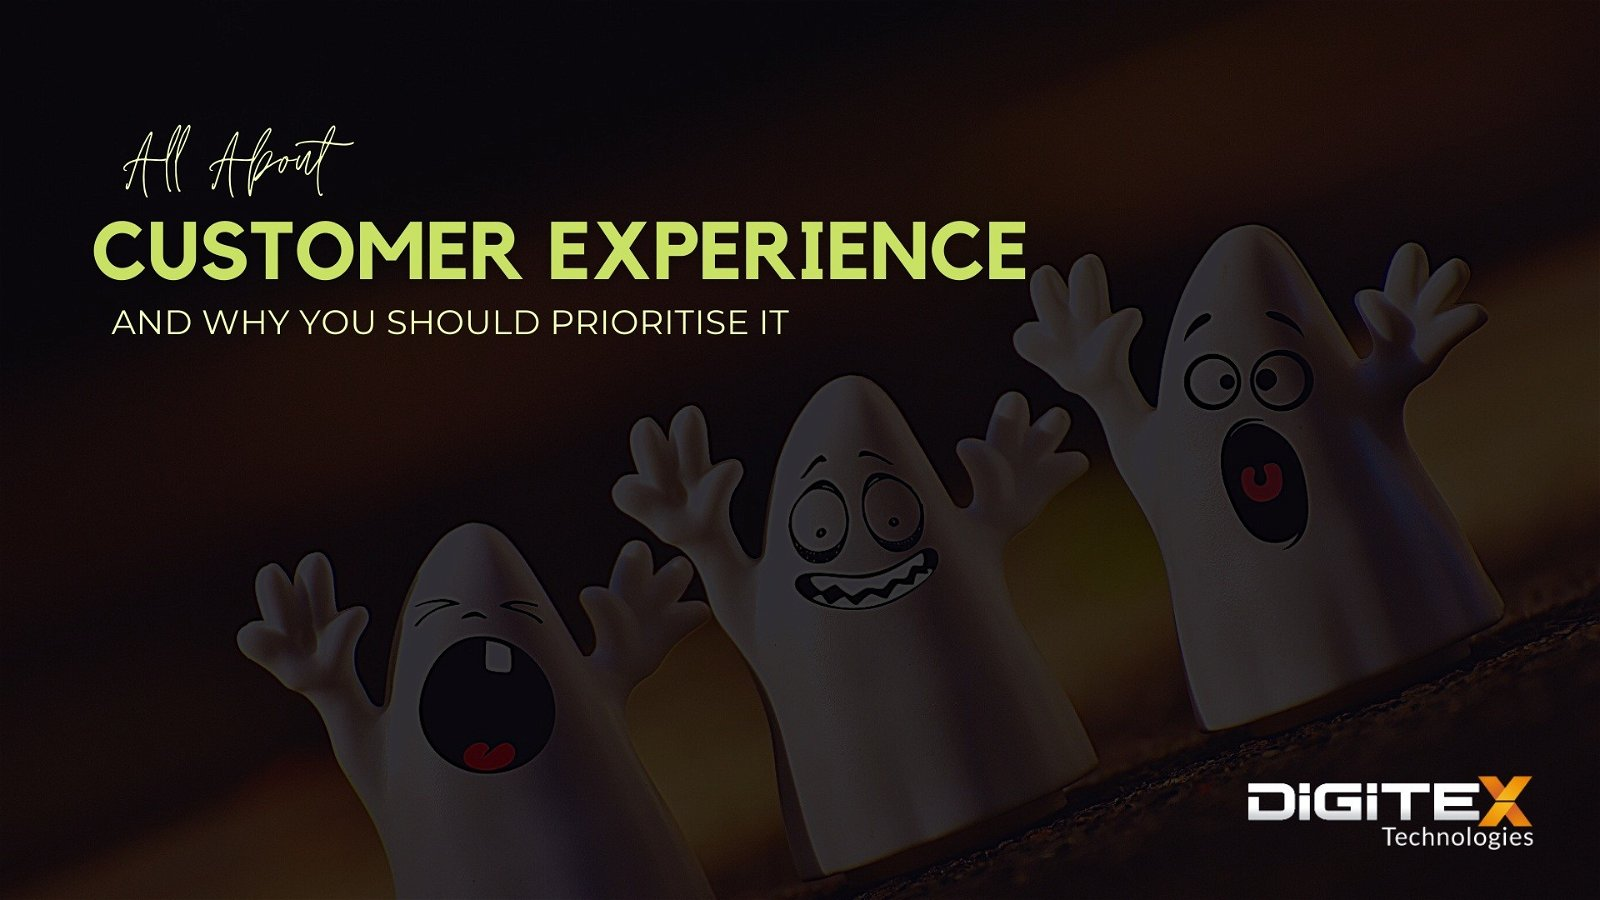 All About Customer Experience And Why You Should Prioritise It